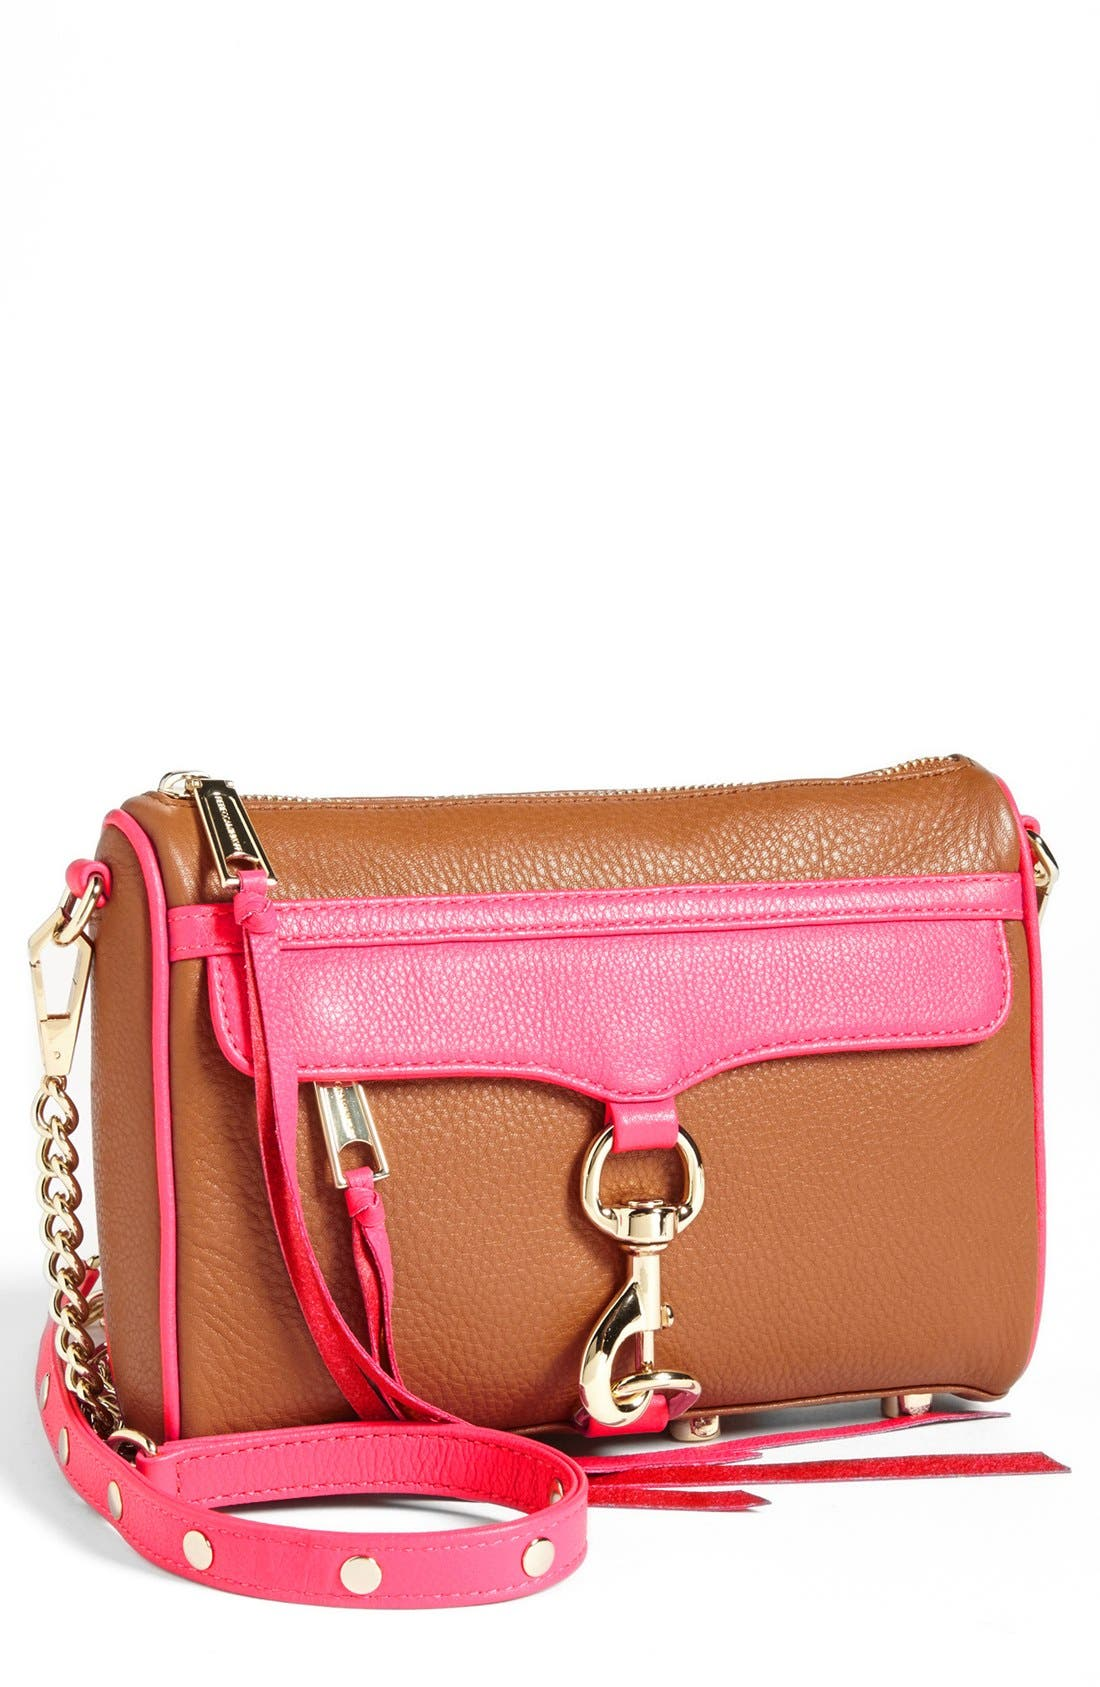 Alternate Image 1 Selected - Rebecca Minkoff 'Mini MAC' Crossbody Clutch (Nordstrom Exclusive)